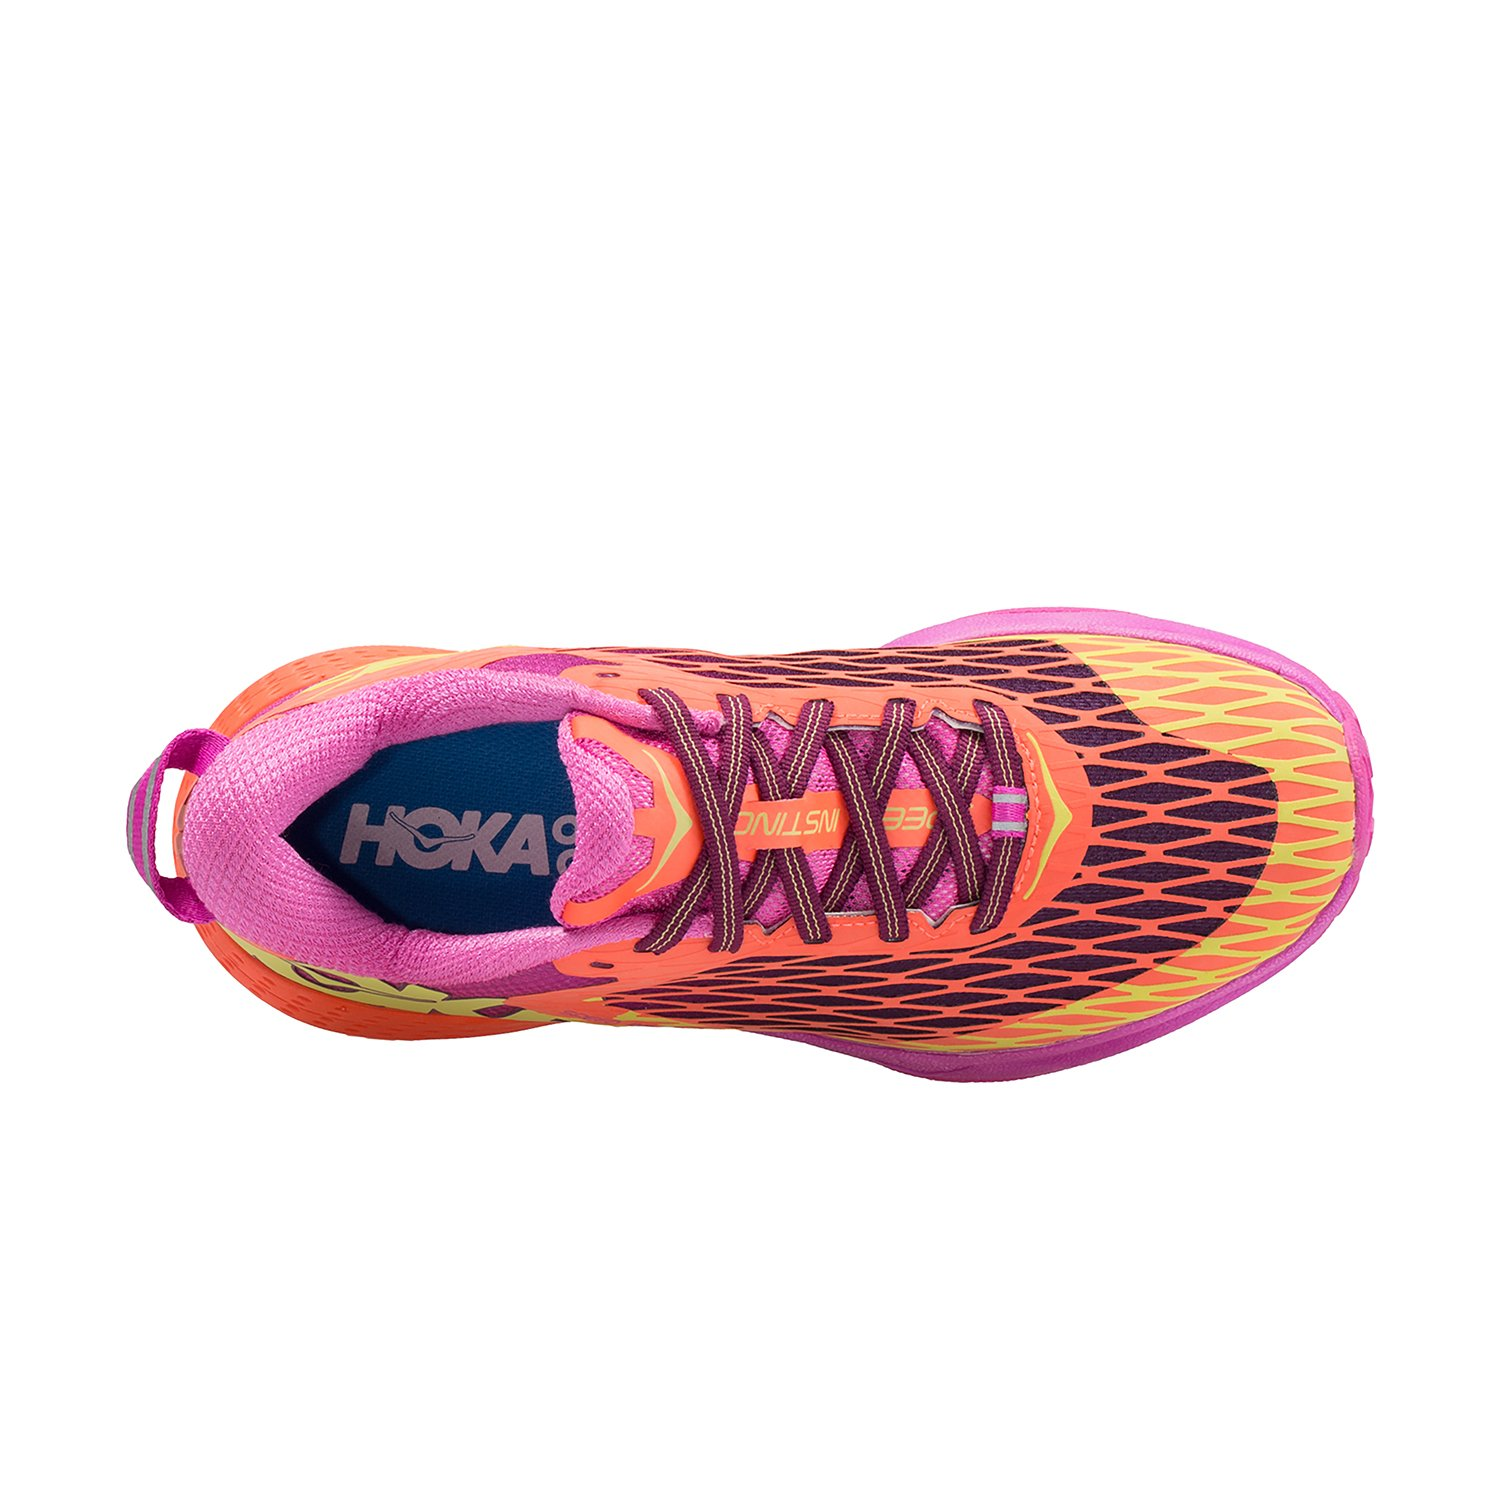 HOKA ONE ONE Women's Speed Instinct Shoe B01AXG8IYK 10 B(M) US|Neon Coral/Plum